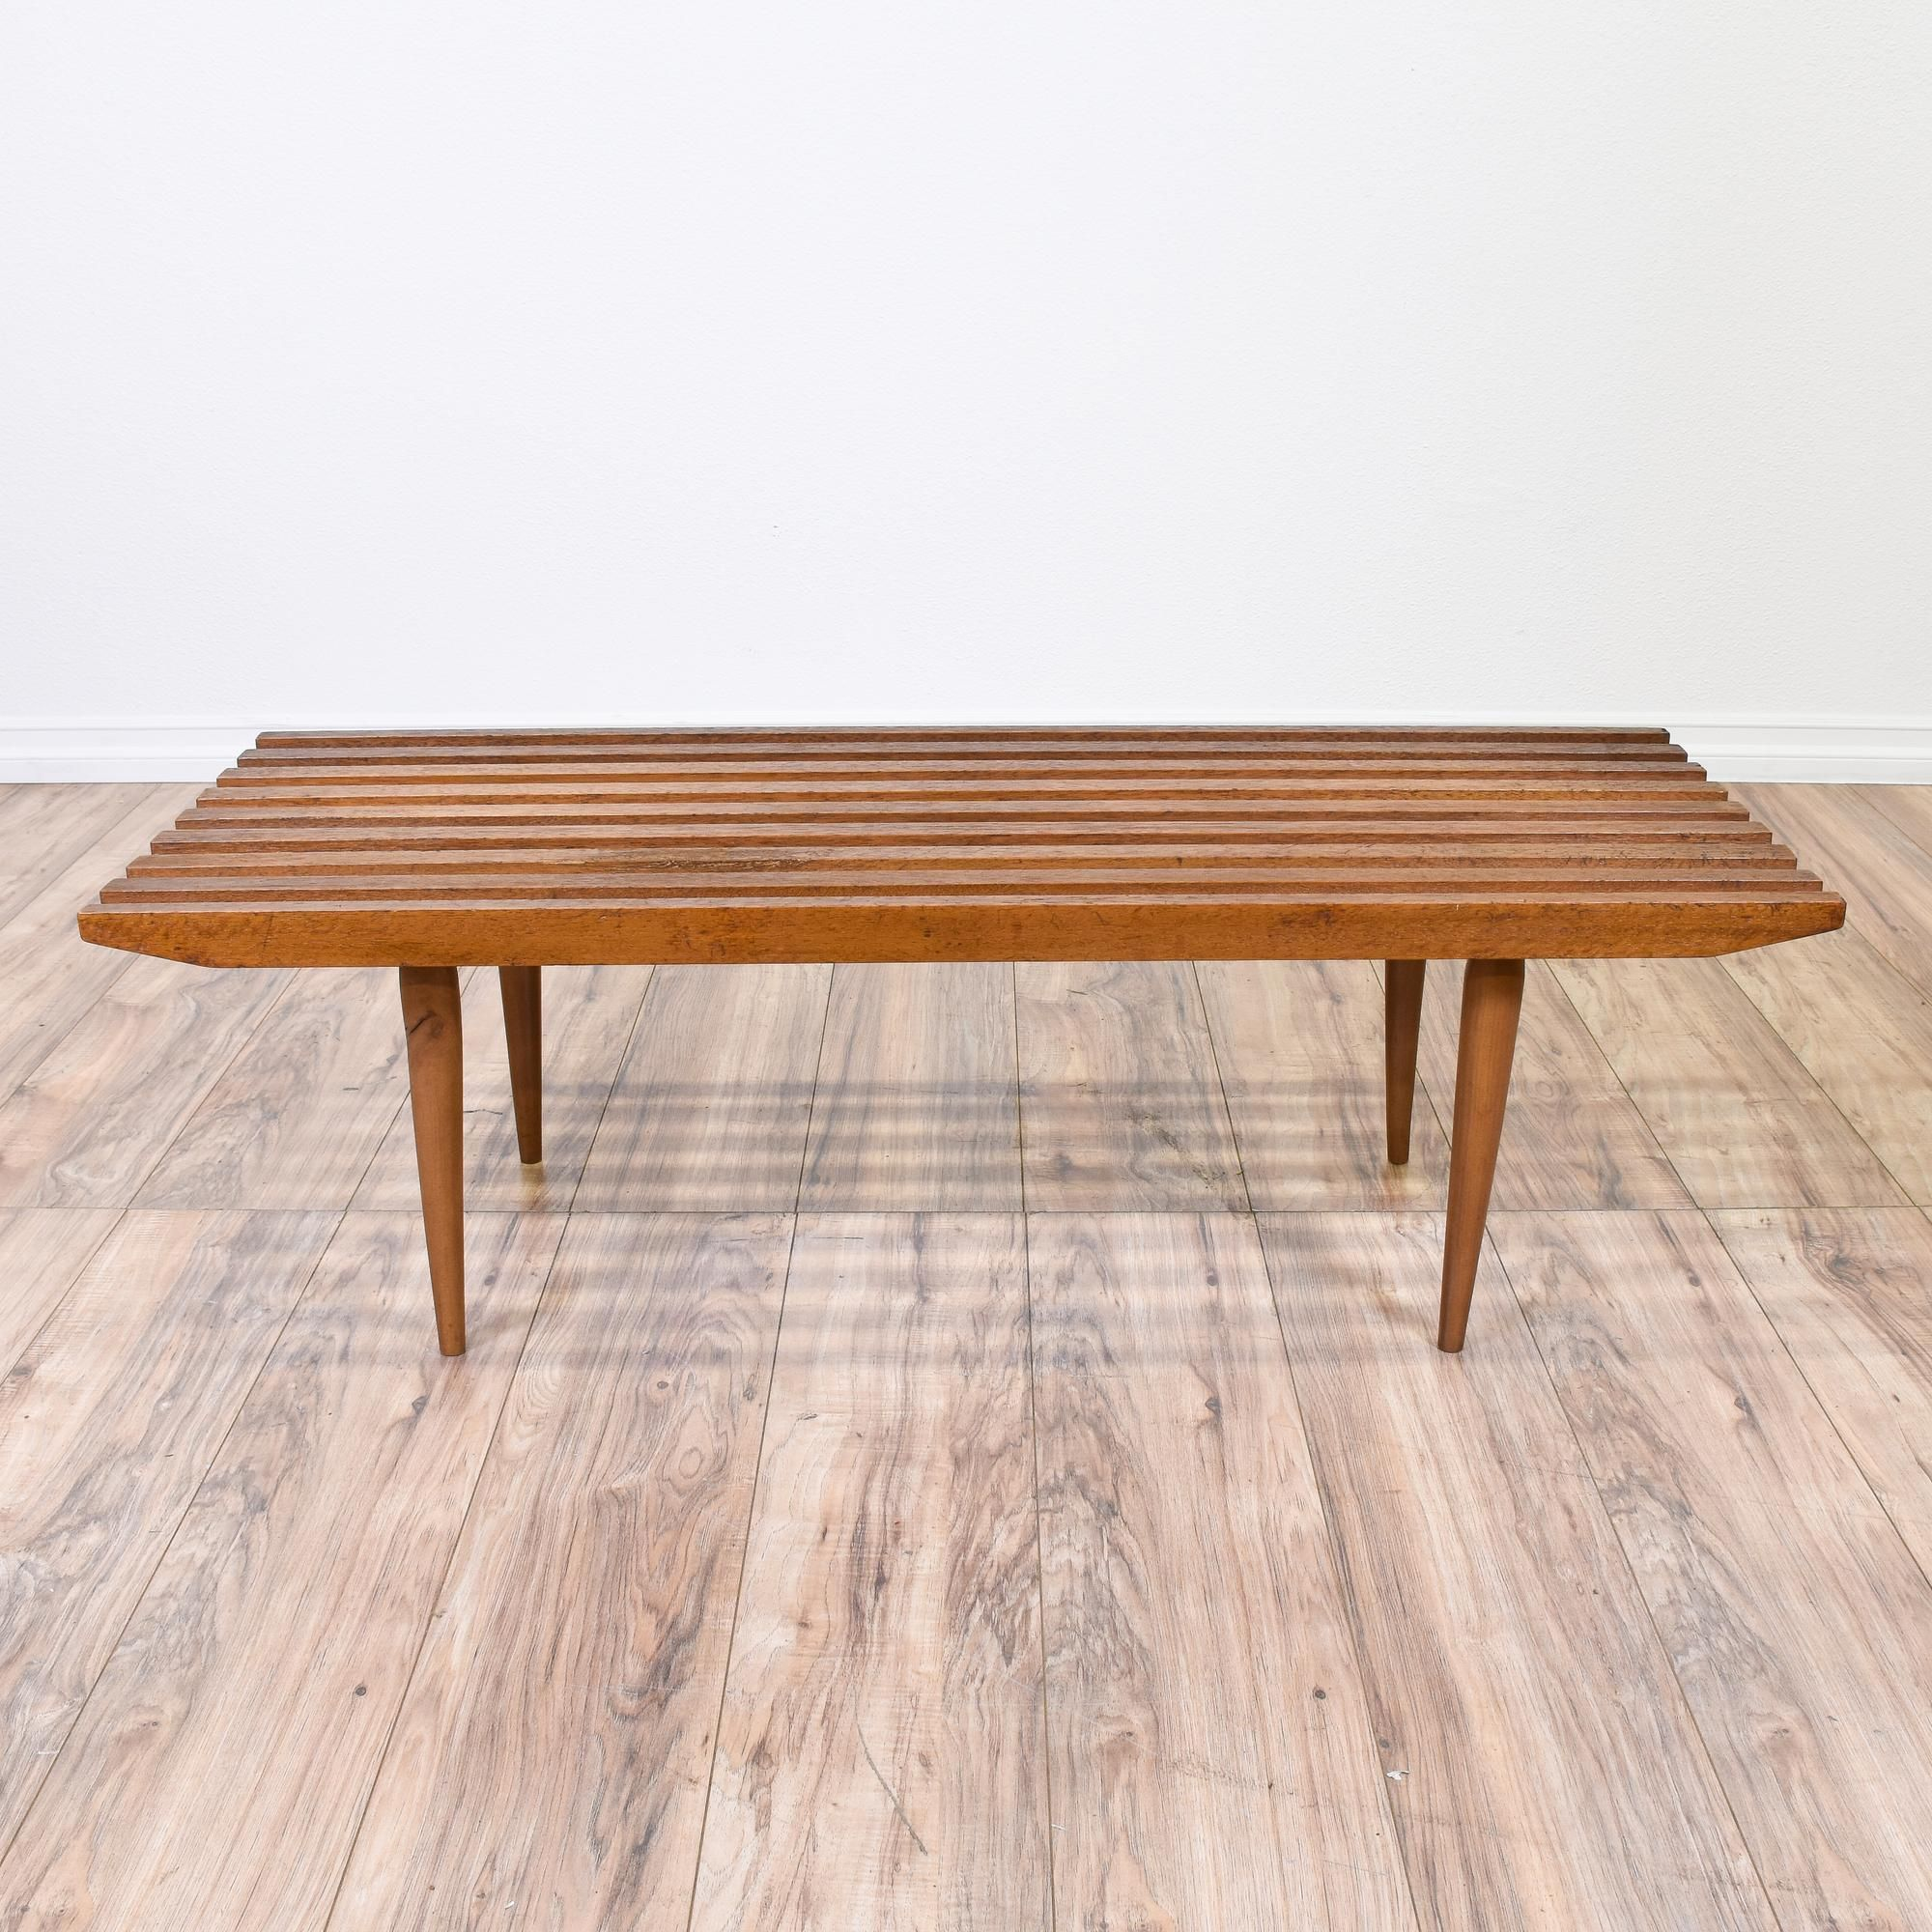 This mid century modern bench made in japan is featured in a solid this mid century modern bench made in japan is featured in a solid wood with a gorgeous teak finish this bench coffee table has tapered legs and a wood geotapseo Gallery